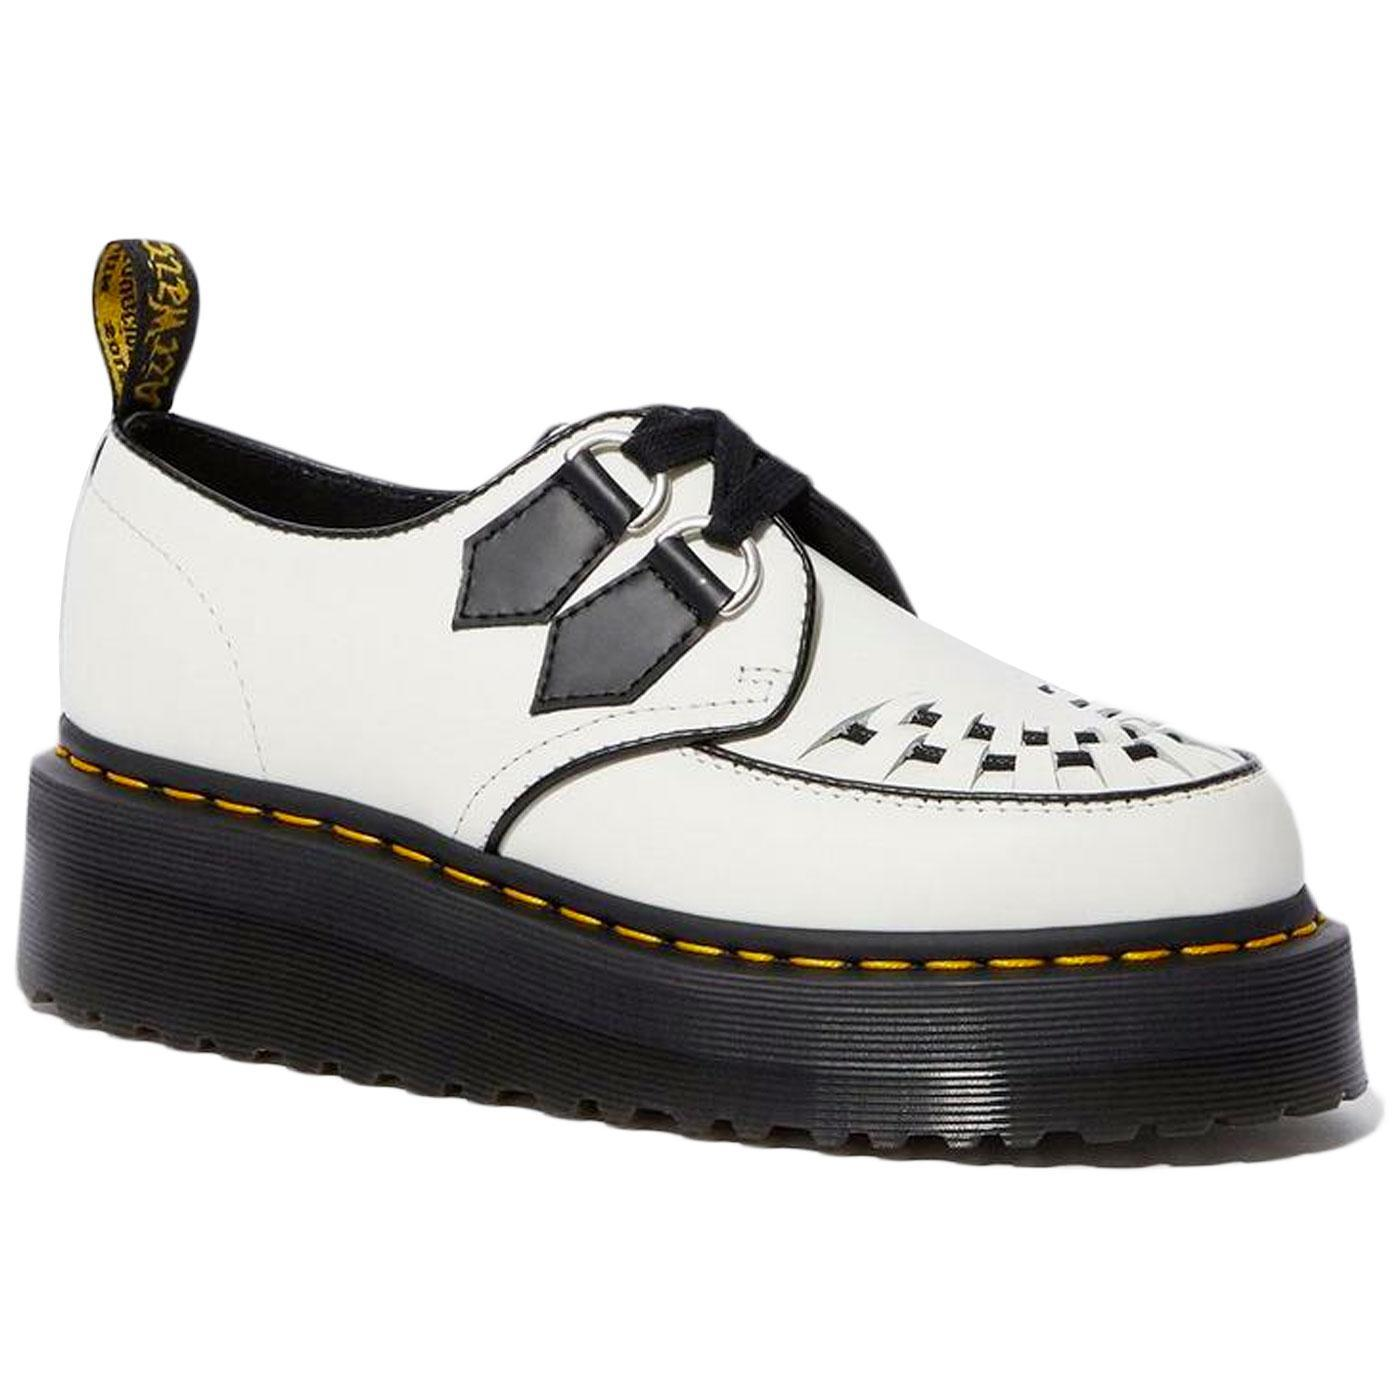 Sidney DR MARTENS Men's Retro Smooth Creepers W